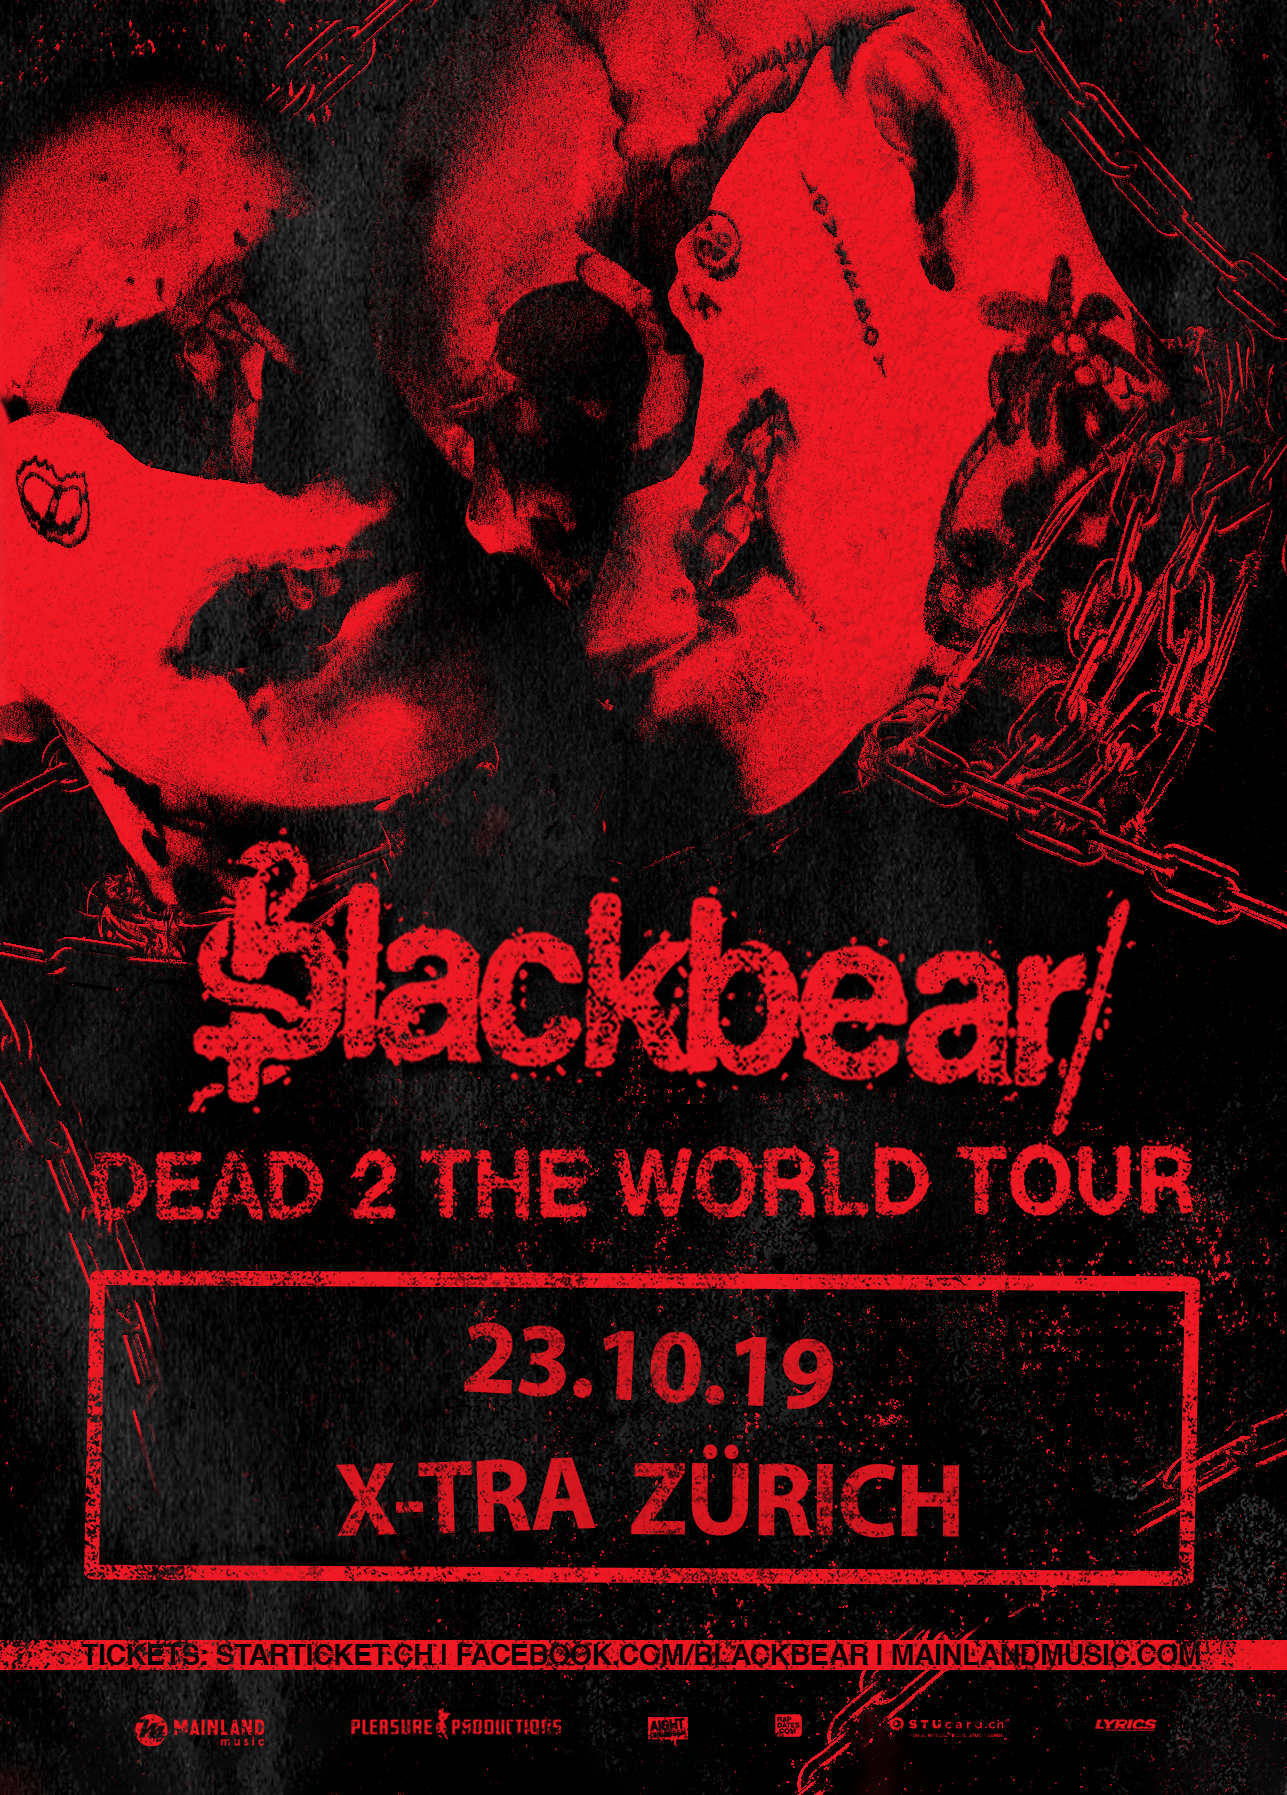 blackbear – Dead 2 the World Tour